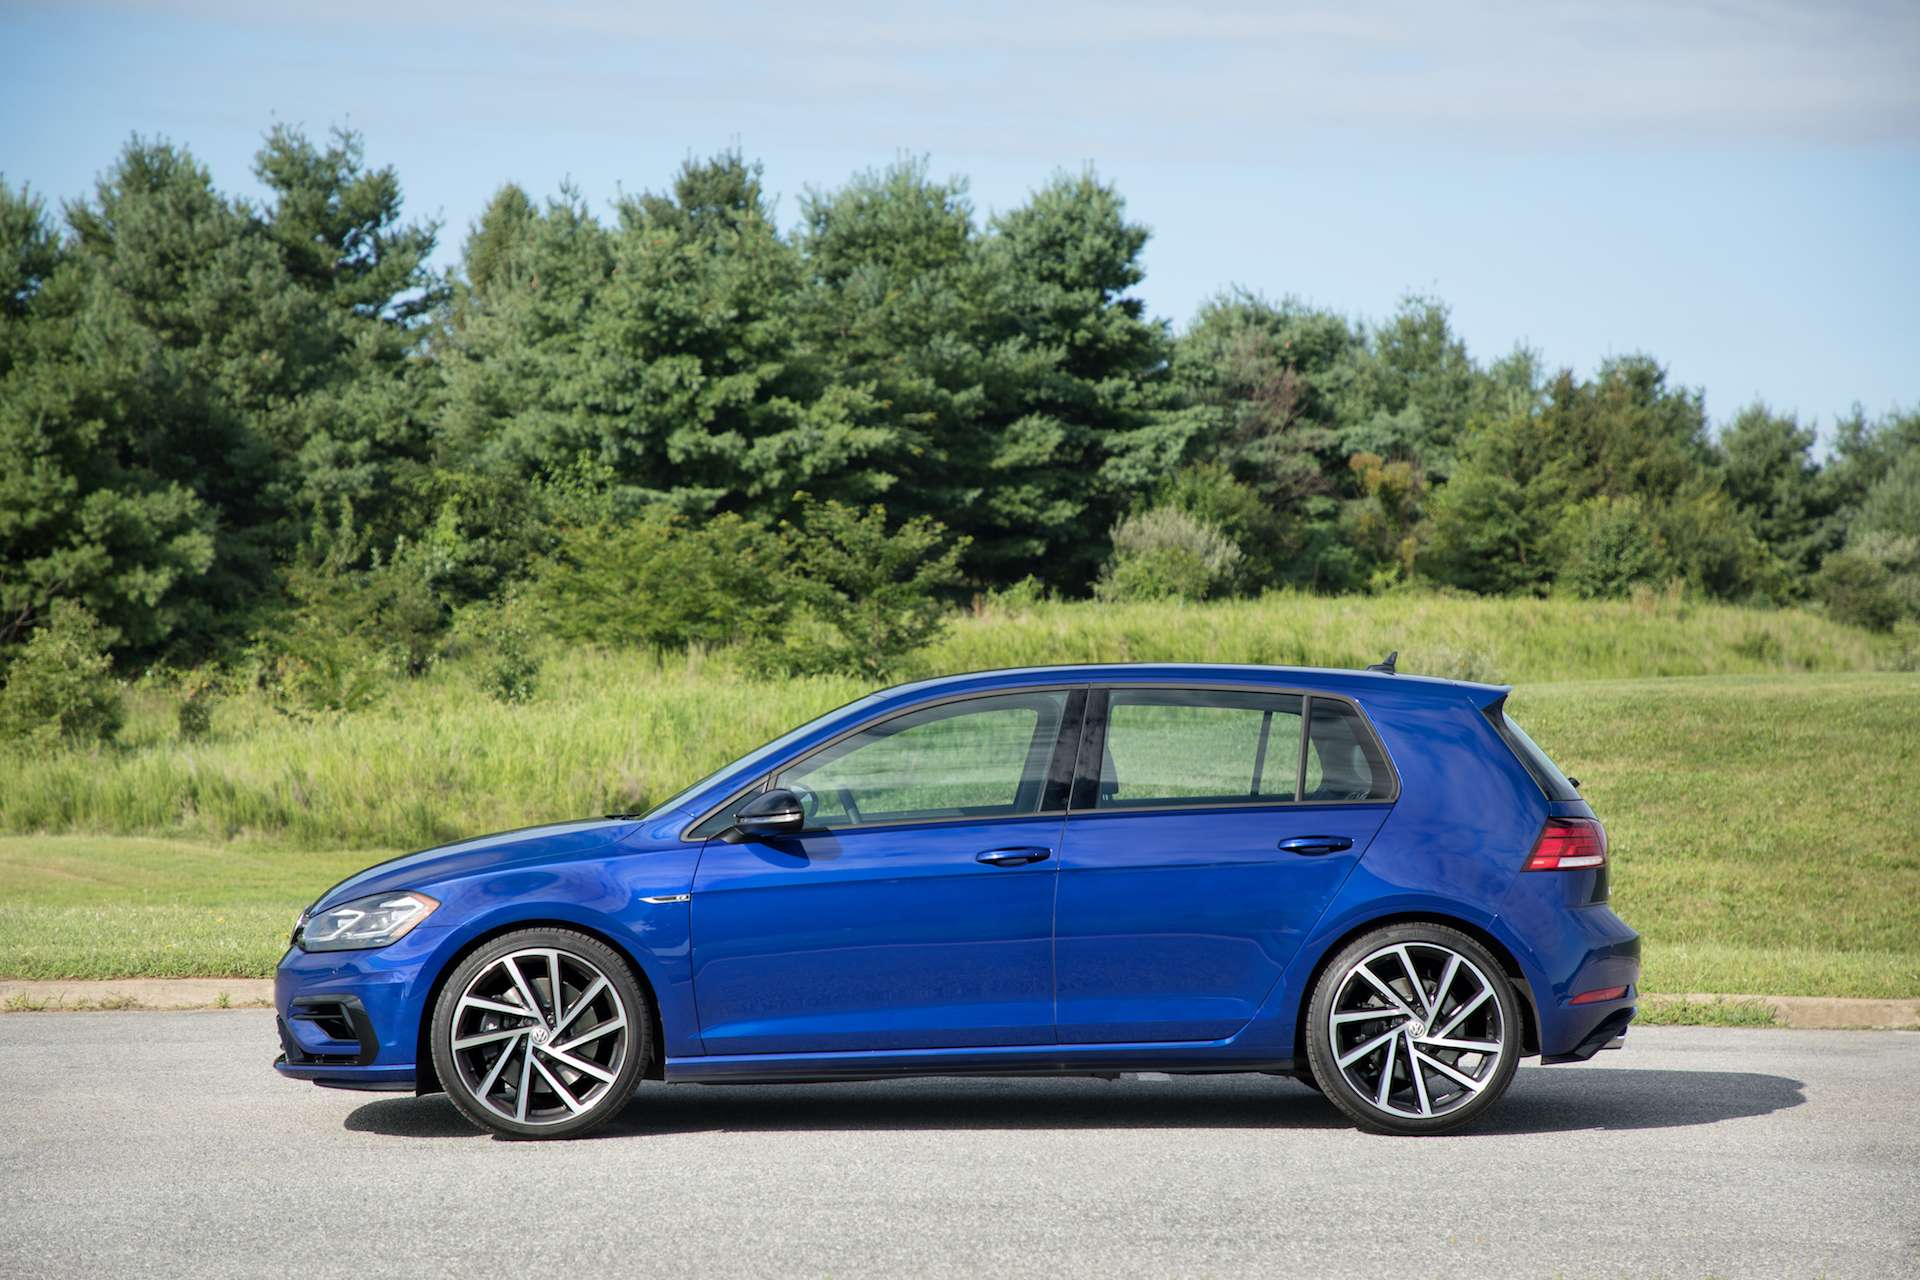 71 The Best 2019 Vw Golf R Usa Release Date